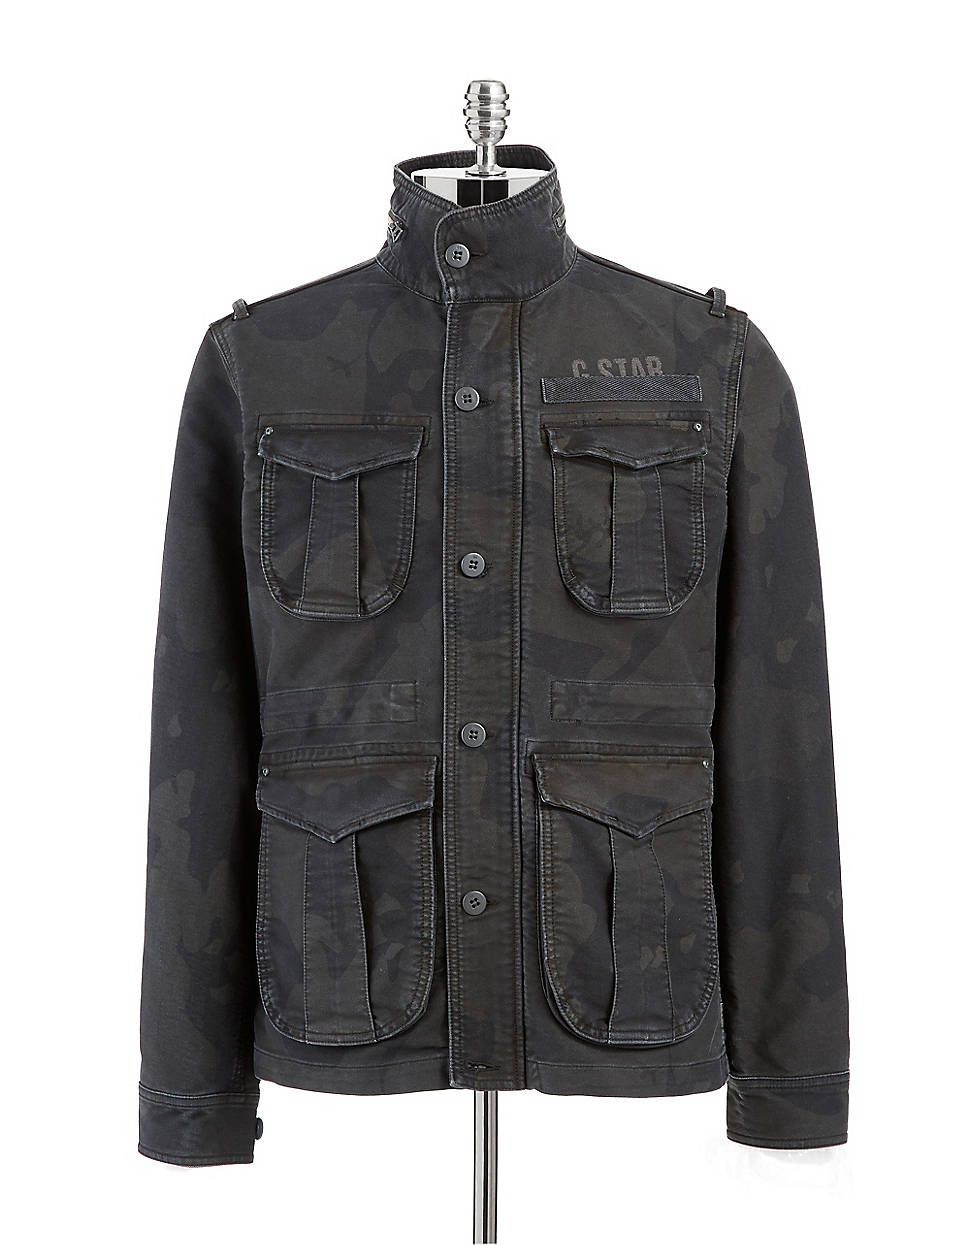 g star jacket size guide